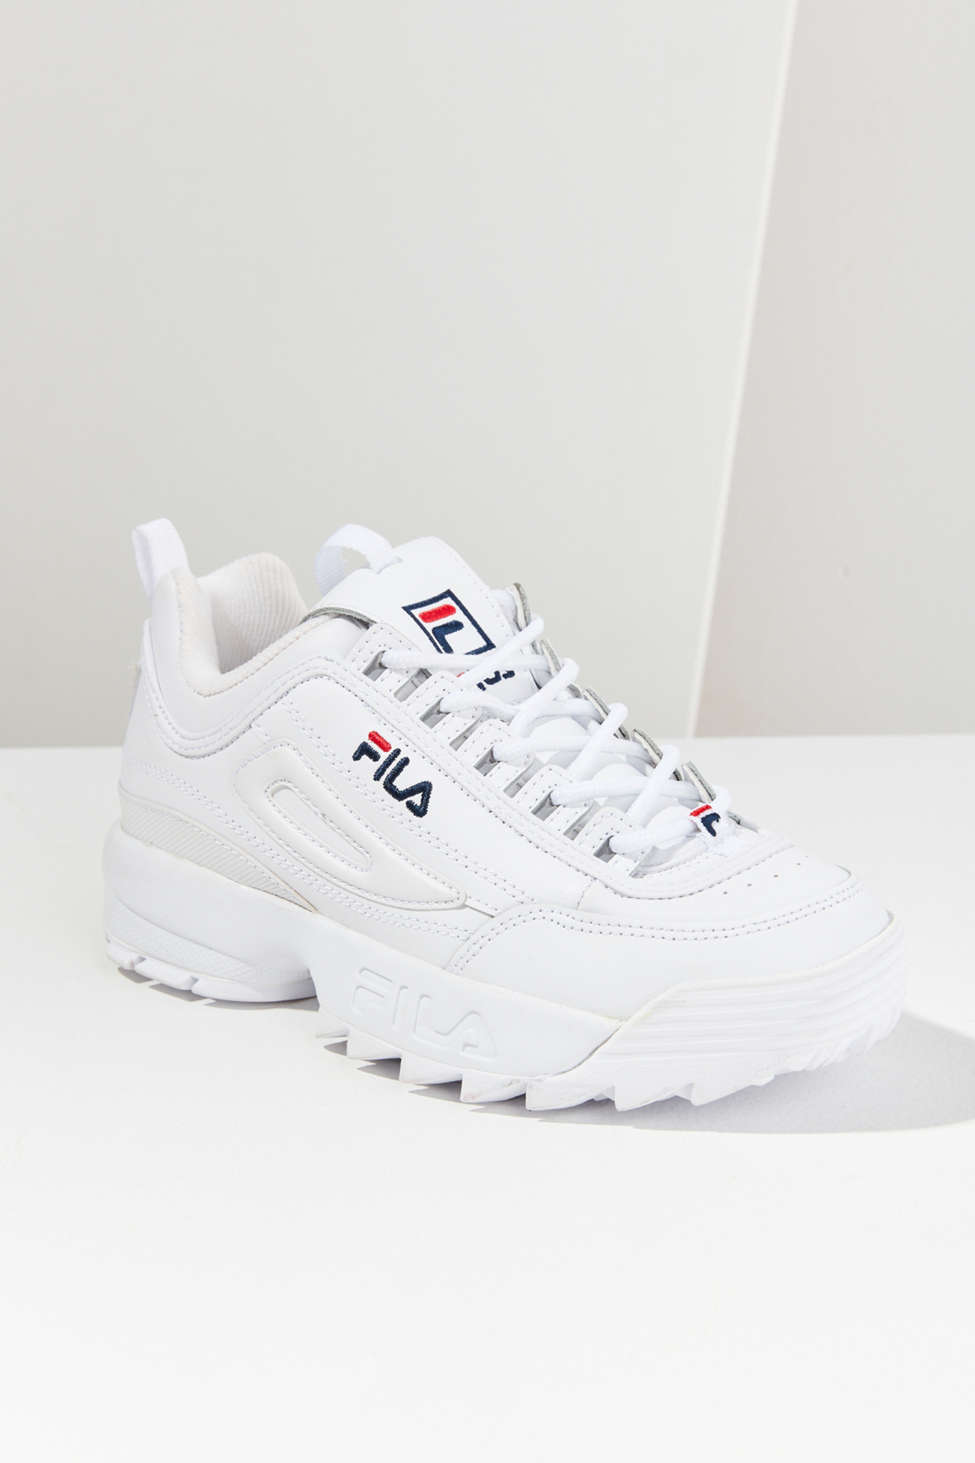 https://s7d5.scene7.com/is/image/UrbanOutfitters/44883460_010_b?$xlarge$&hei=900&qlt=80&fit=constrain